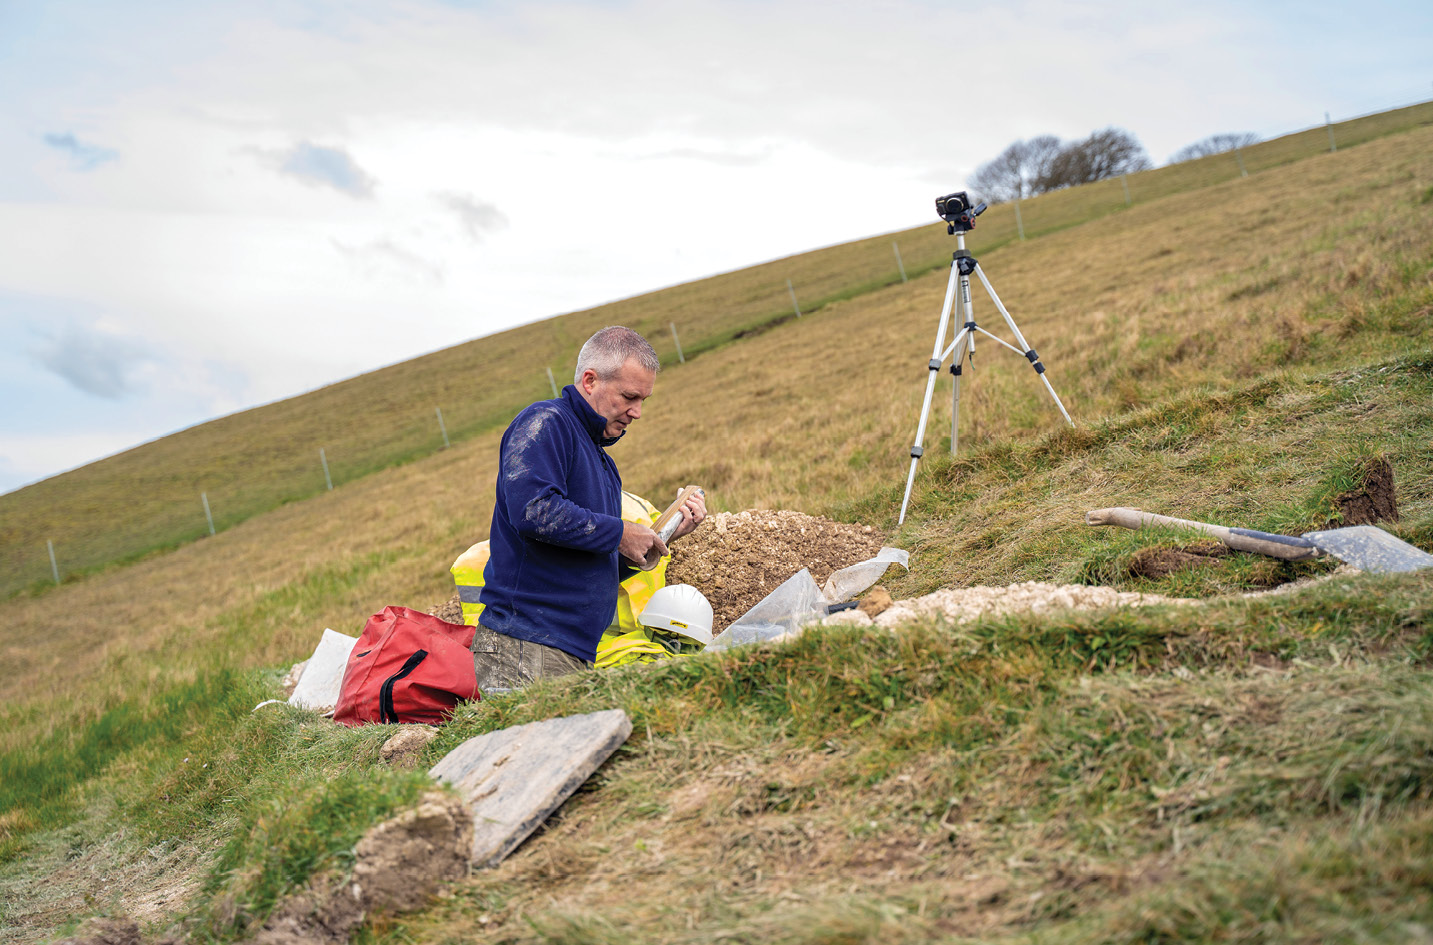 below Professor Phillip Toms of the University of Gloucestershire, shown here labelling samples from the Giant, carried out the OSL analysis that established new dating evidence for the hill figure.